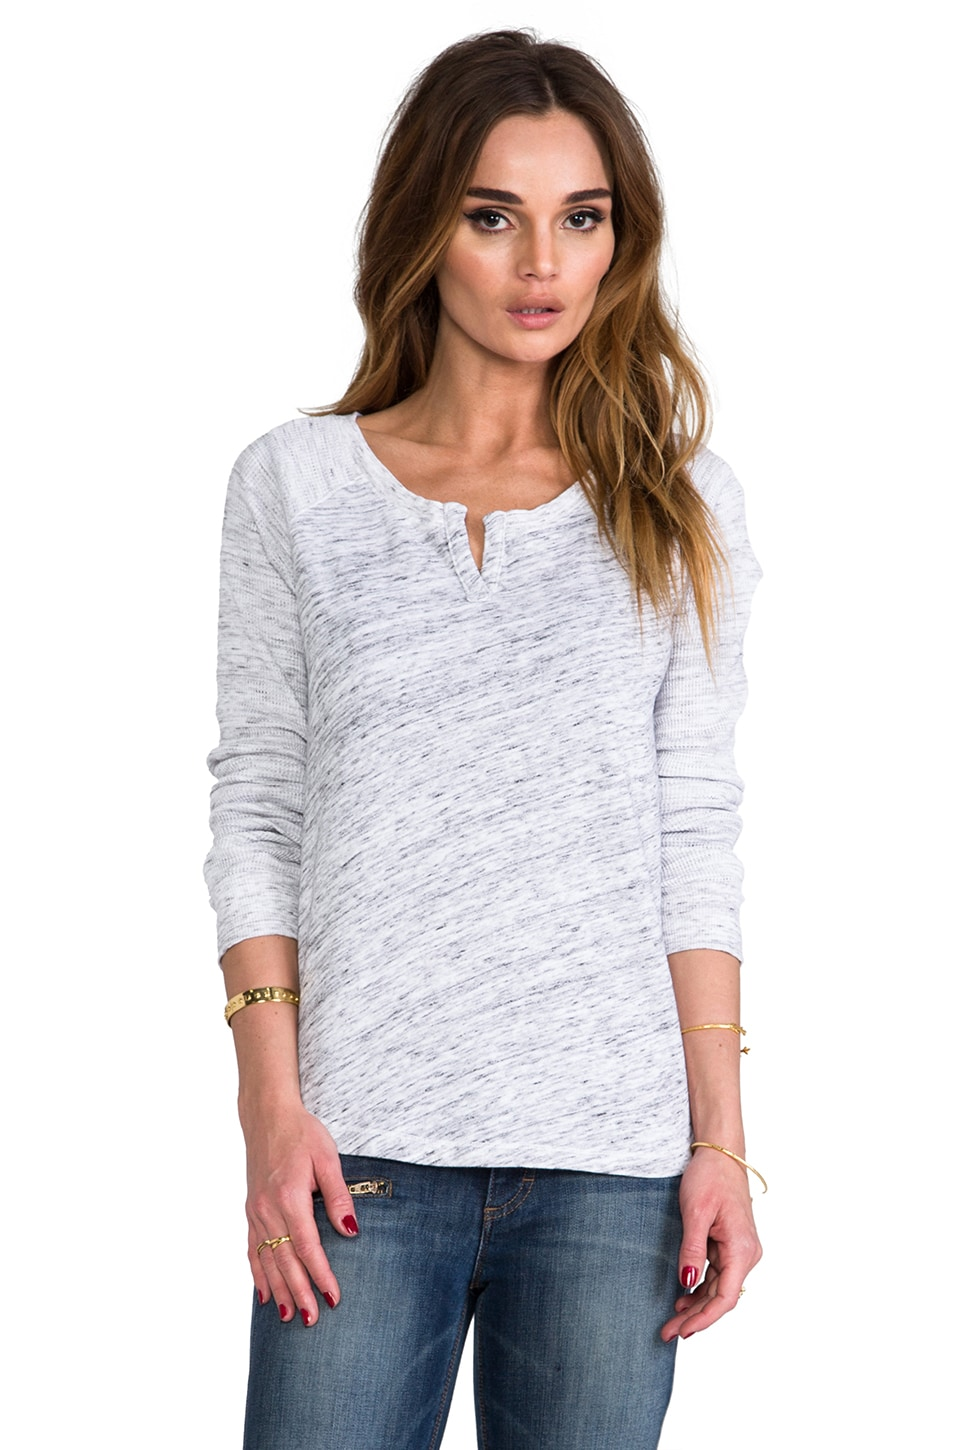 Splendid Space-Dyed Sweatshirt in Ash